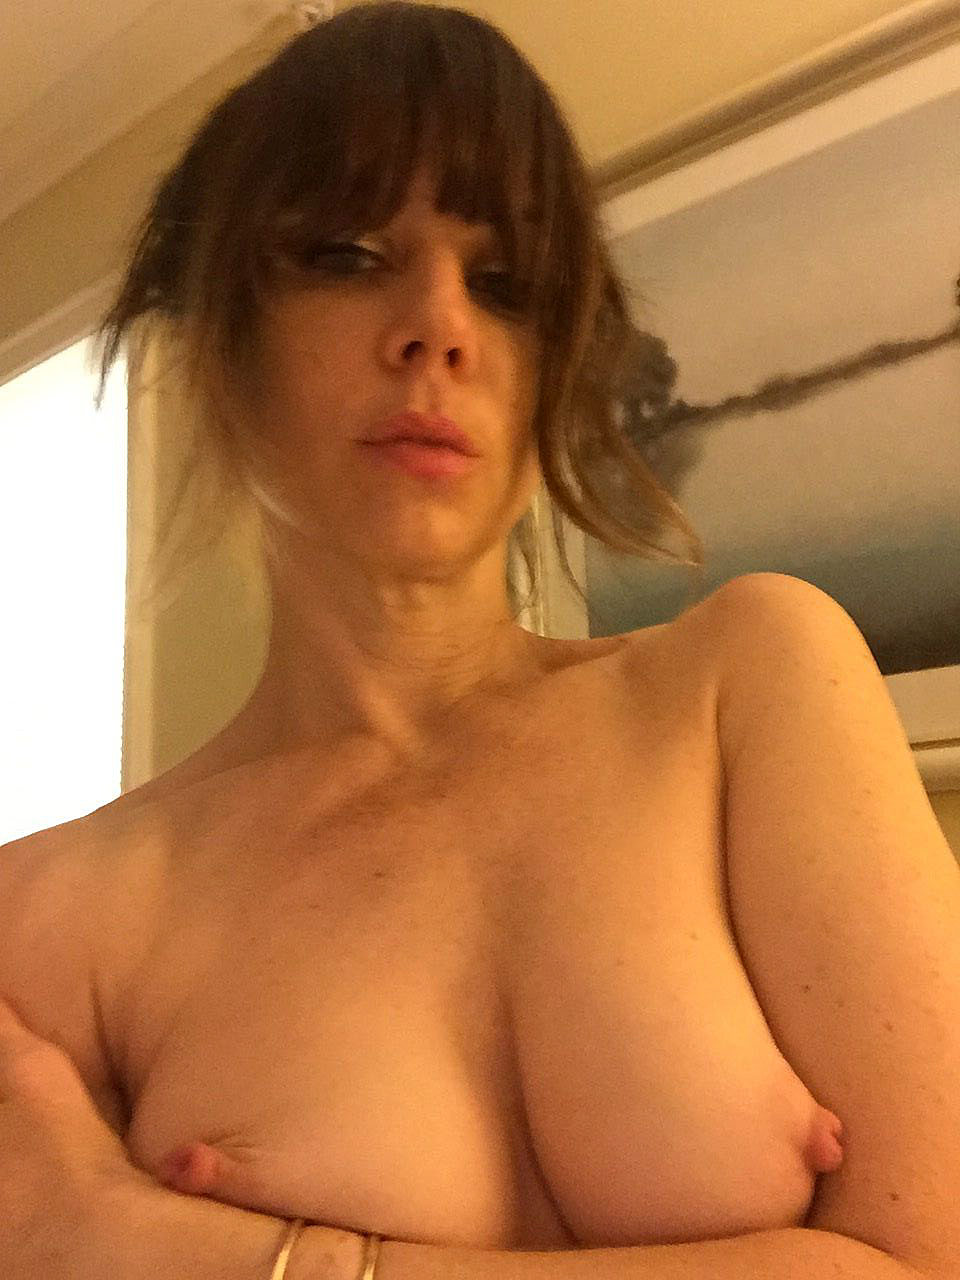 Natasha leggero naked boobs and ass